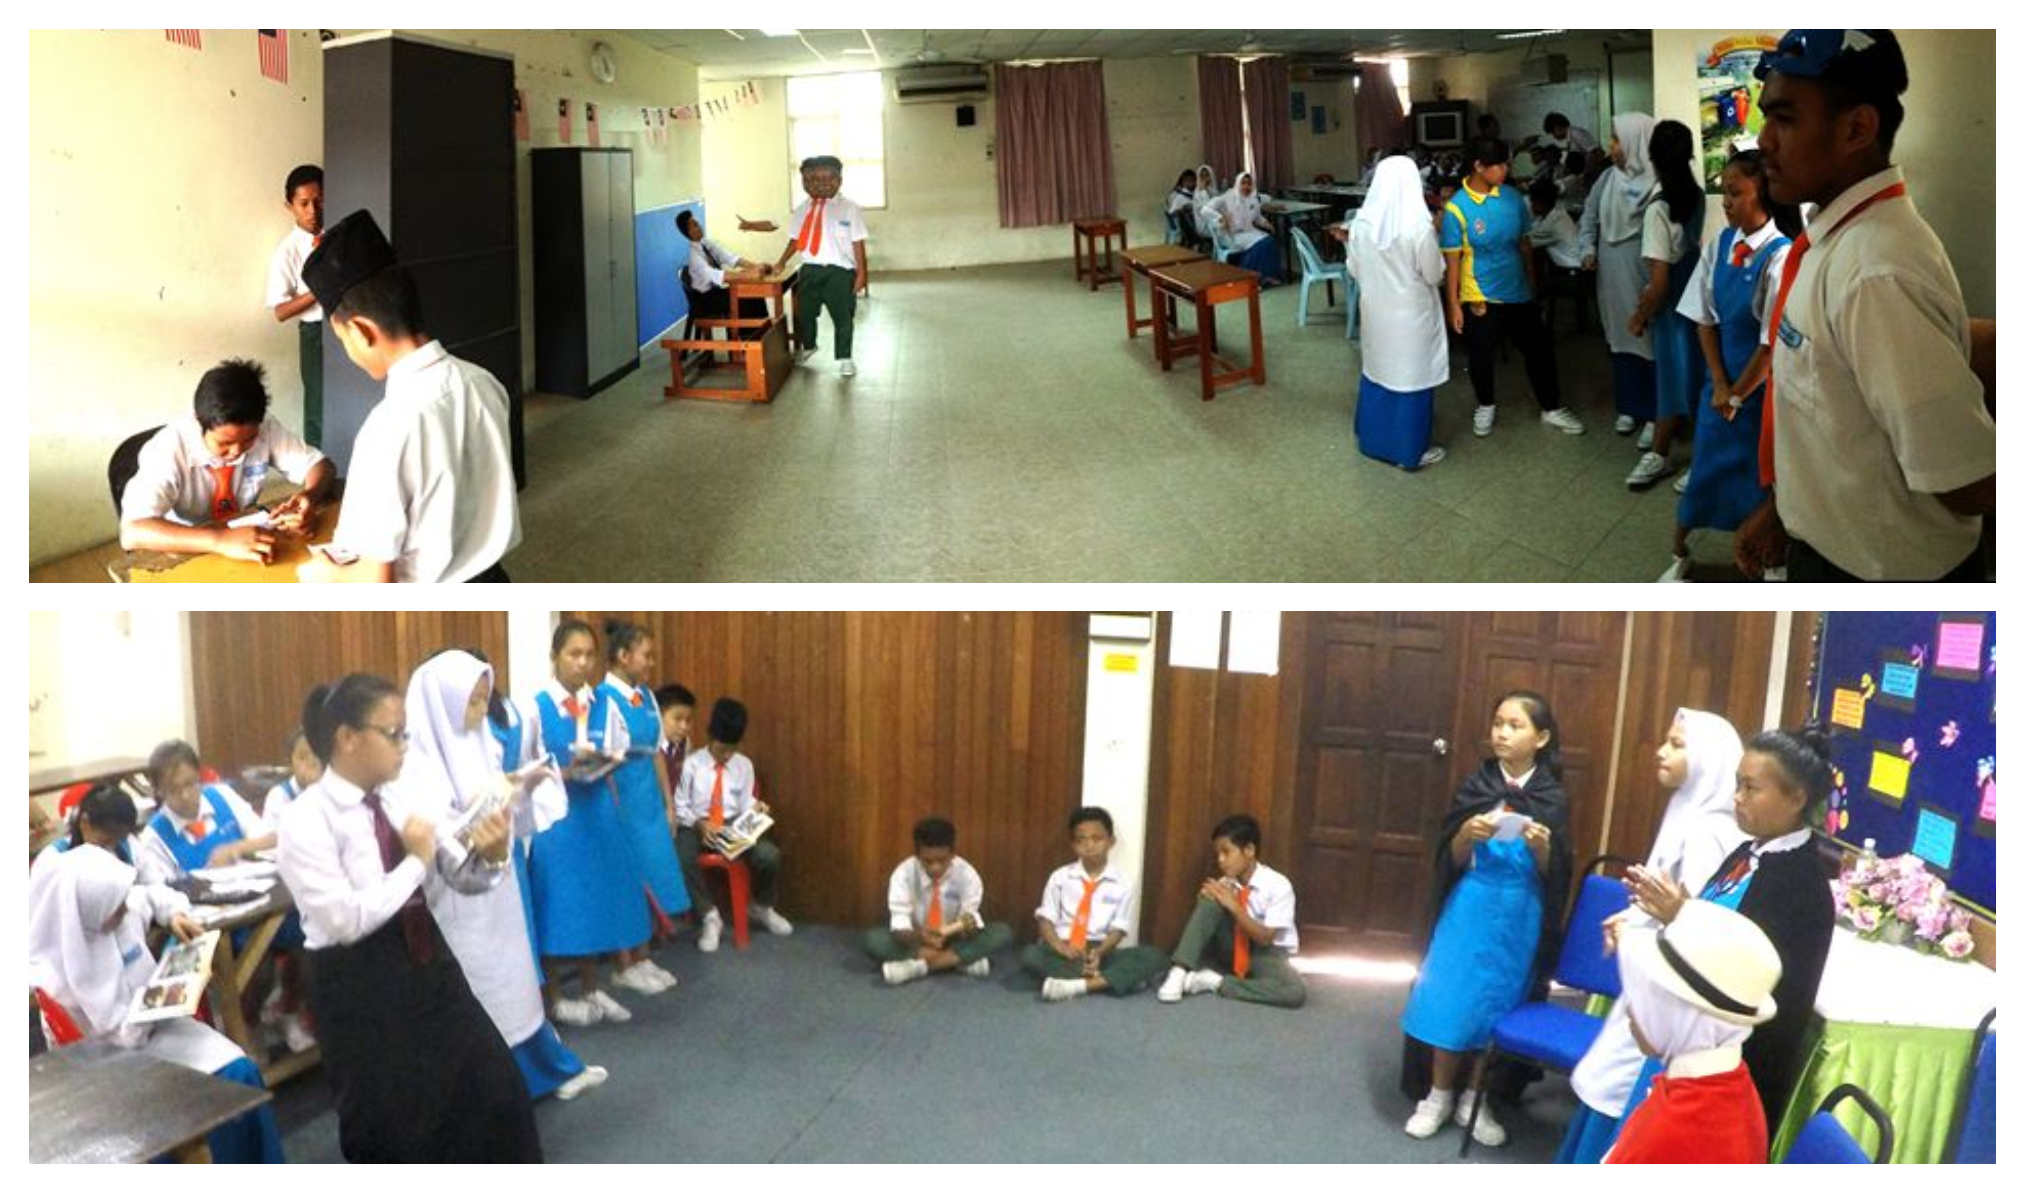 Top photo: the students learnt how to vote, bottom: some students played Lancelot & Arthur while the rest read the graphic novel to follow their progress. Image from Raee Yeoh's Facebook